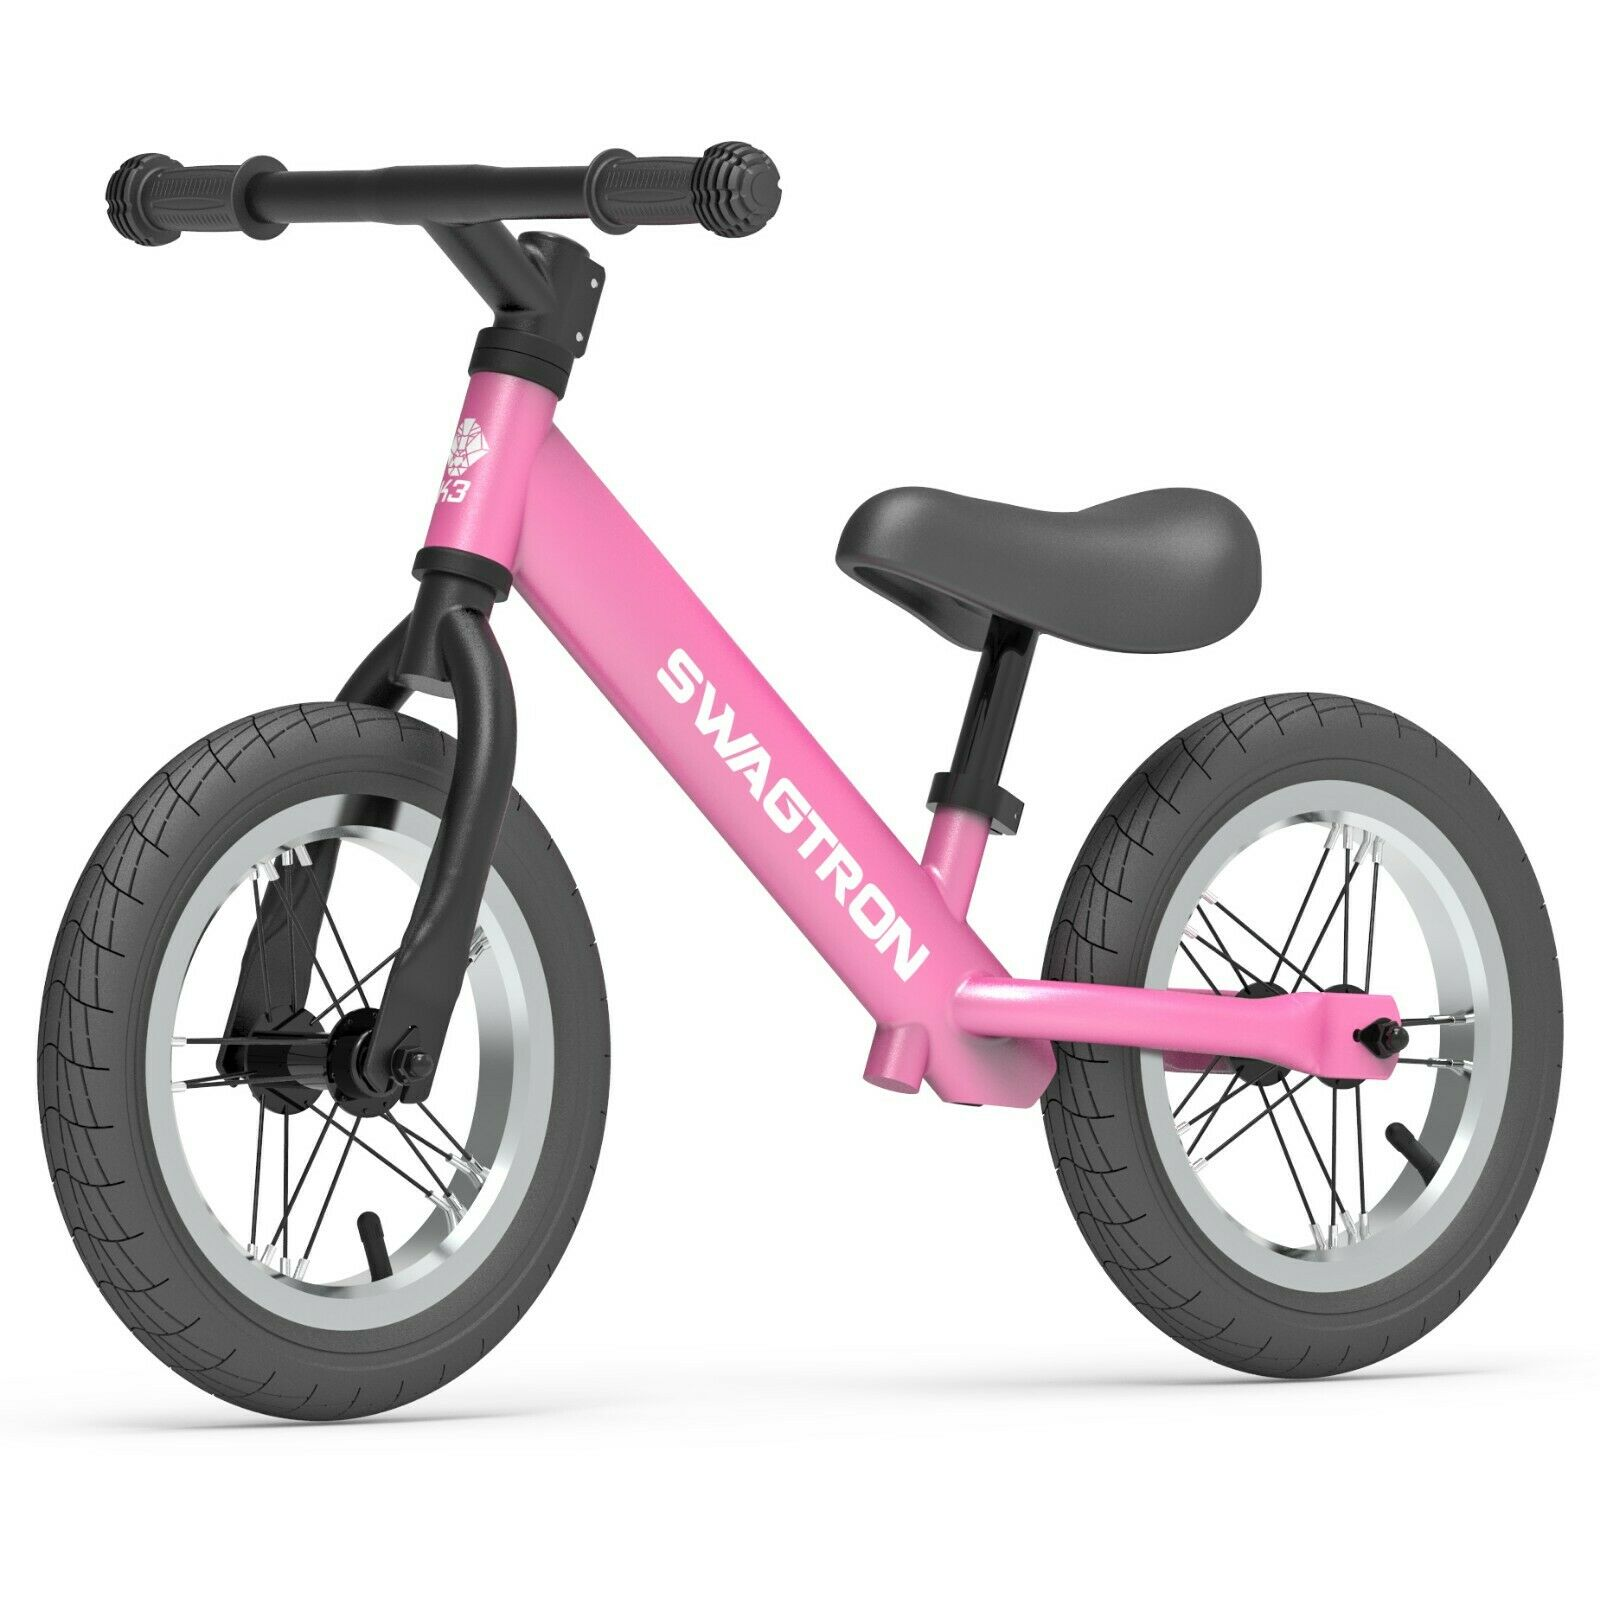 XJD Kids Balance Bike Training Bike Kids Bike No Pedal Lightest Aluminum Frame Adjustable Seat with Air Tires Kids First Bike Ages 1.5 to 6 Years